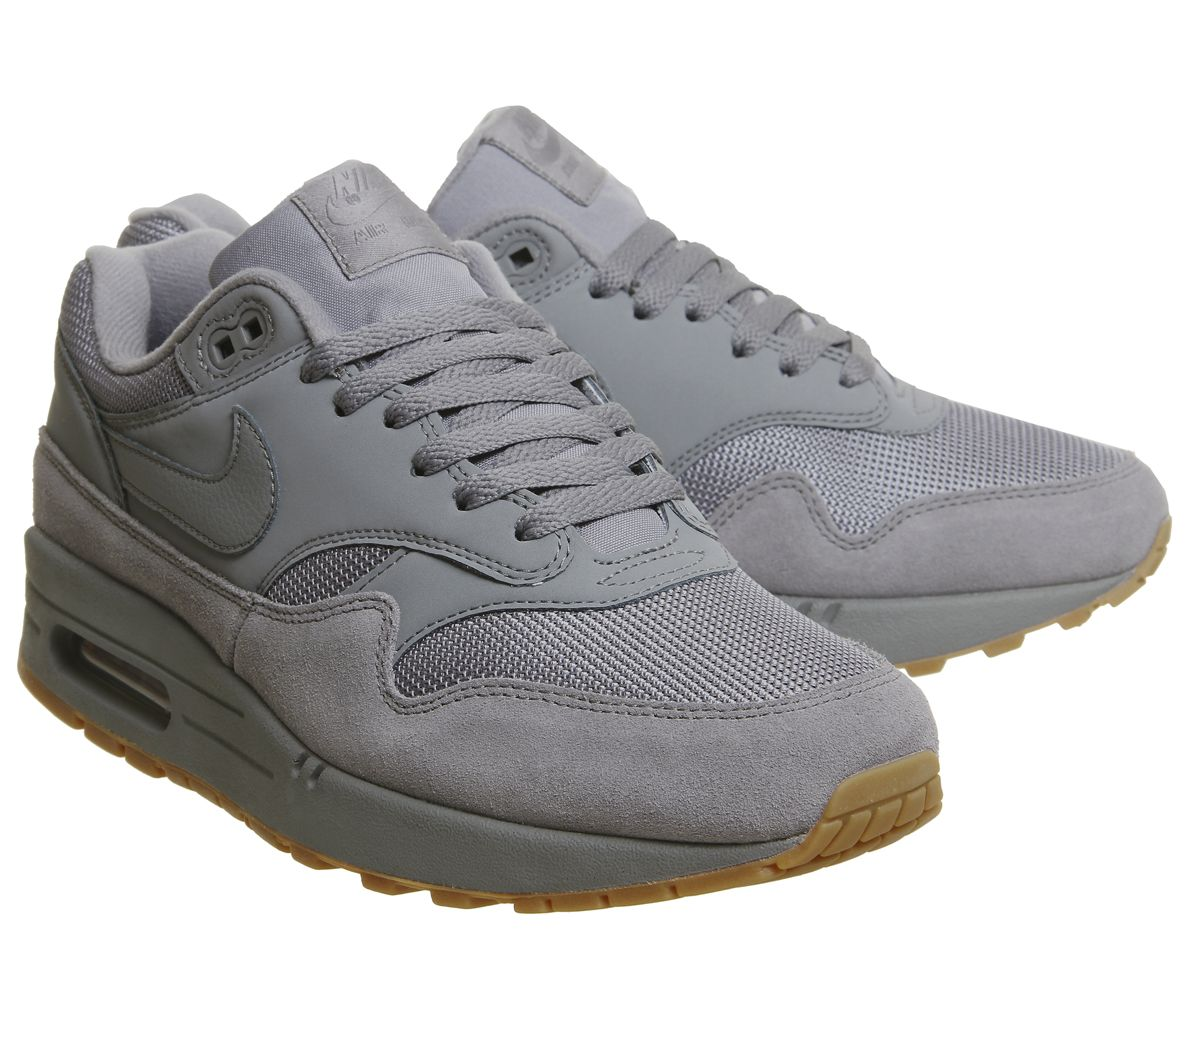 500eeade5b Nike Air Max 1 Trainers Cool Grey Cool Grey Gum - His trainers